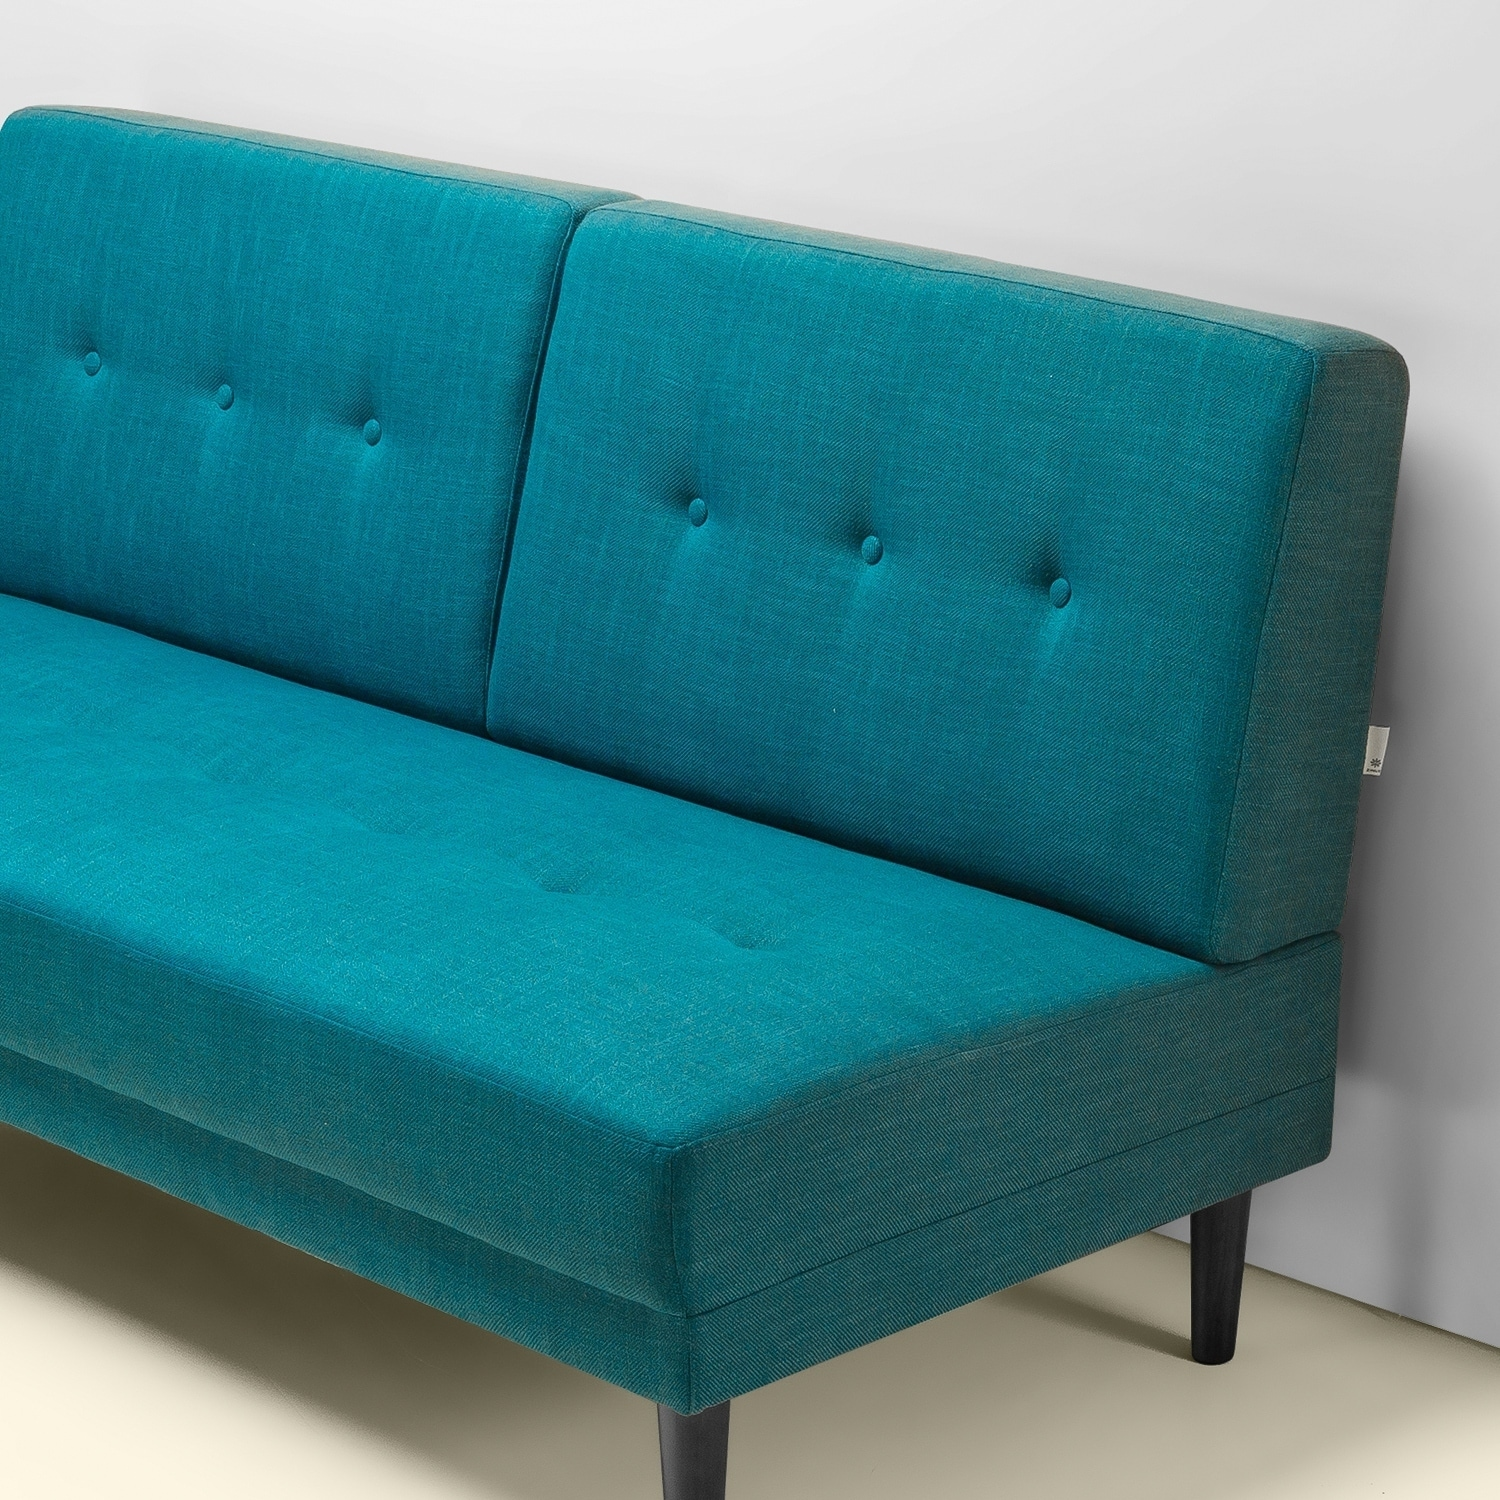 Shop Priage By Zinus Mid Century Armless 65 Inch Sofa Turquoise